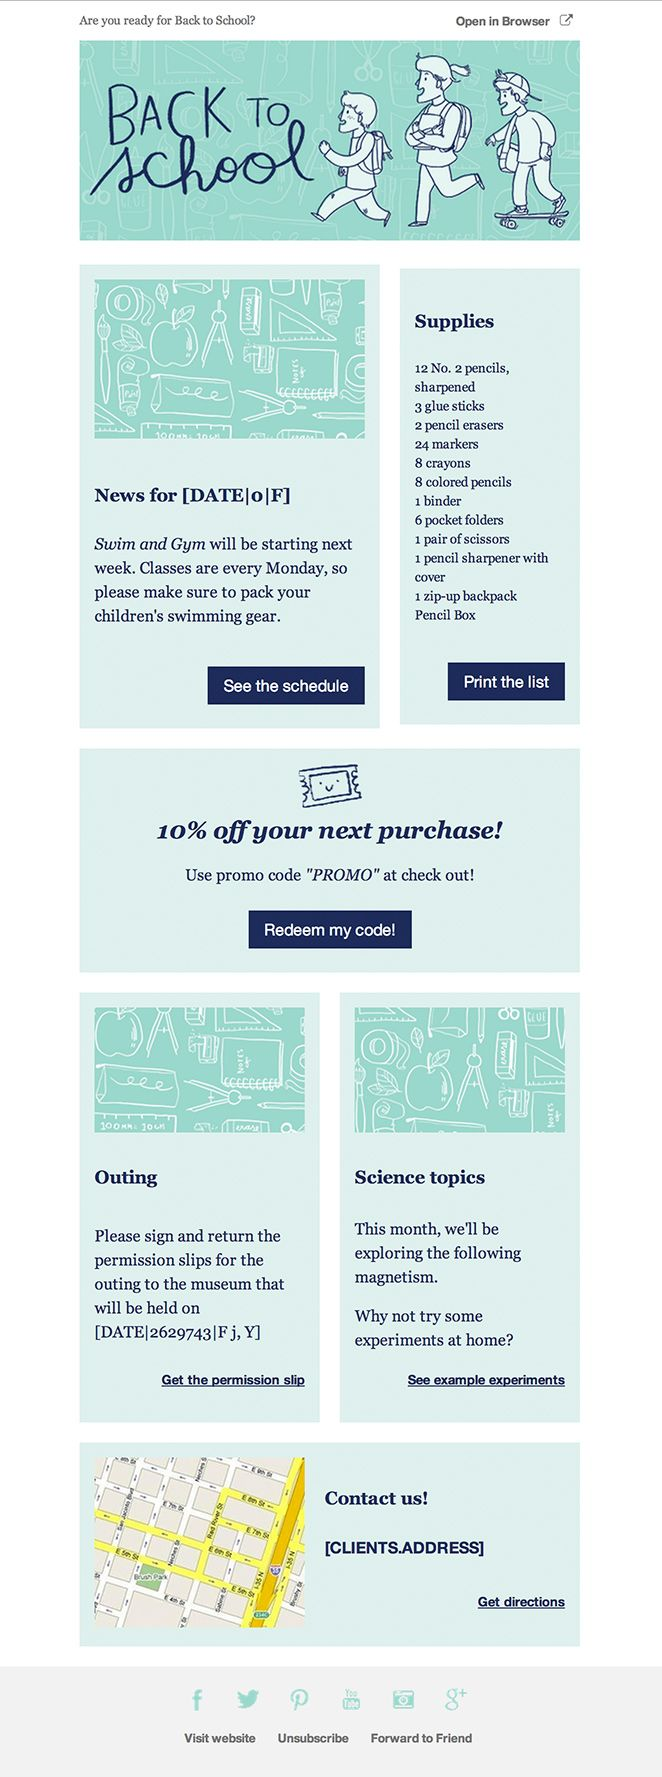 Newsletter Templates, Free Email Templates